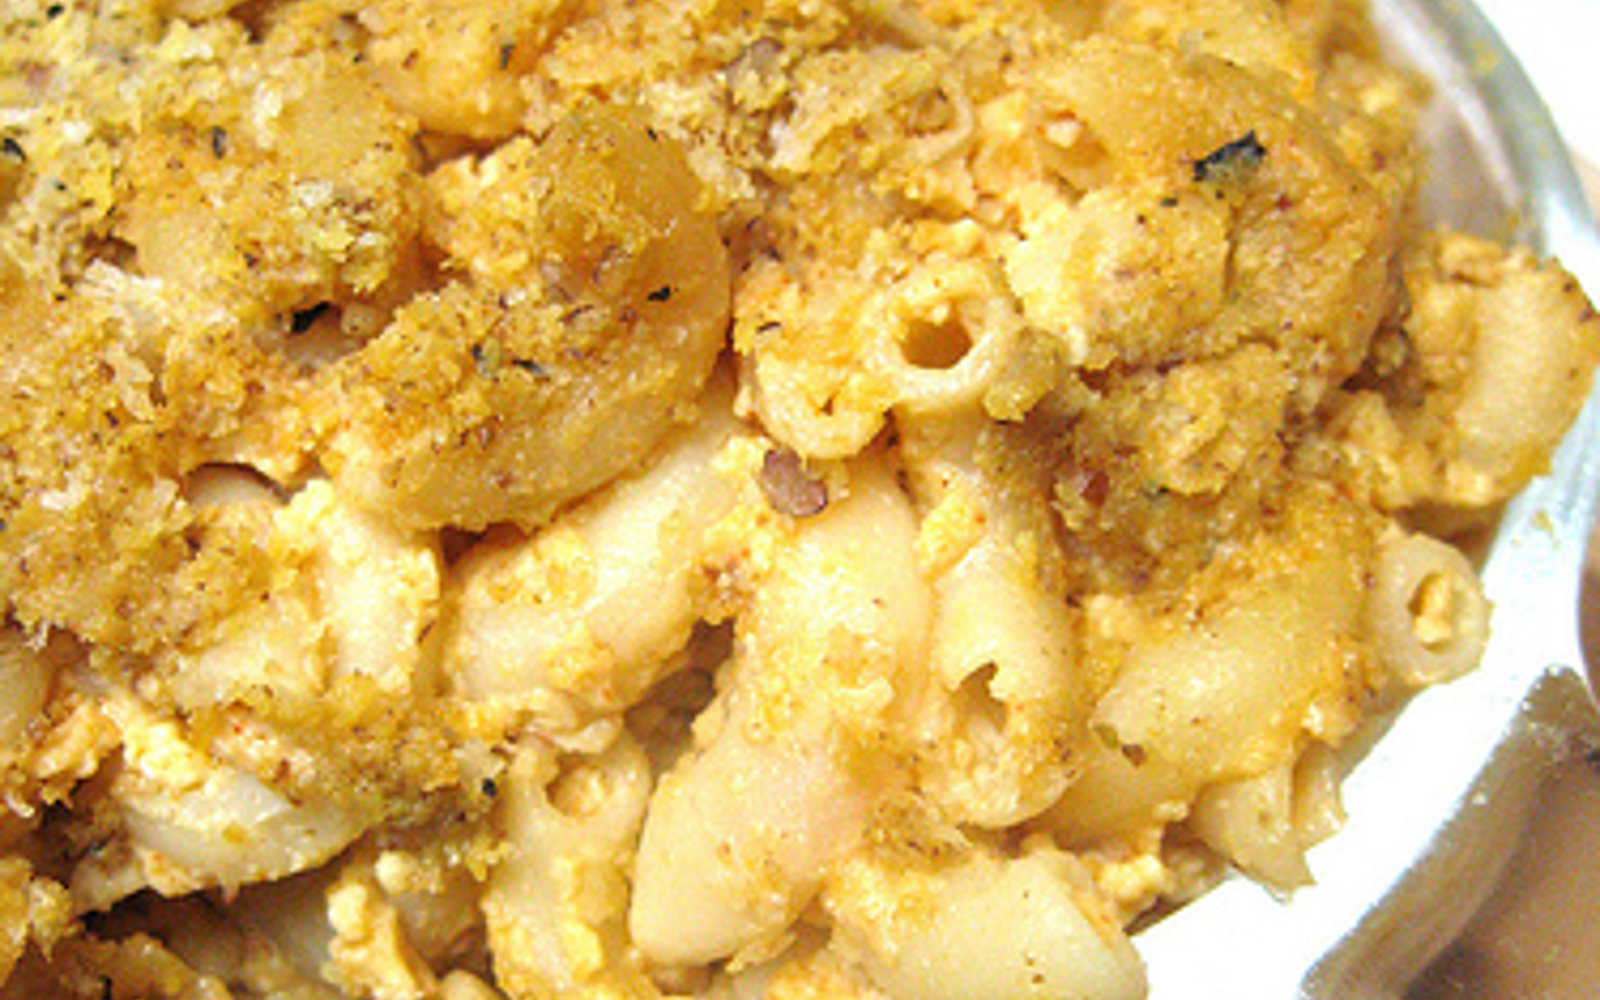 Vegan Five Cheese Baked Macaroni and Cheese with nutritional yeast